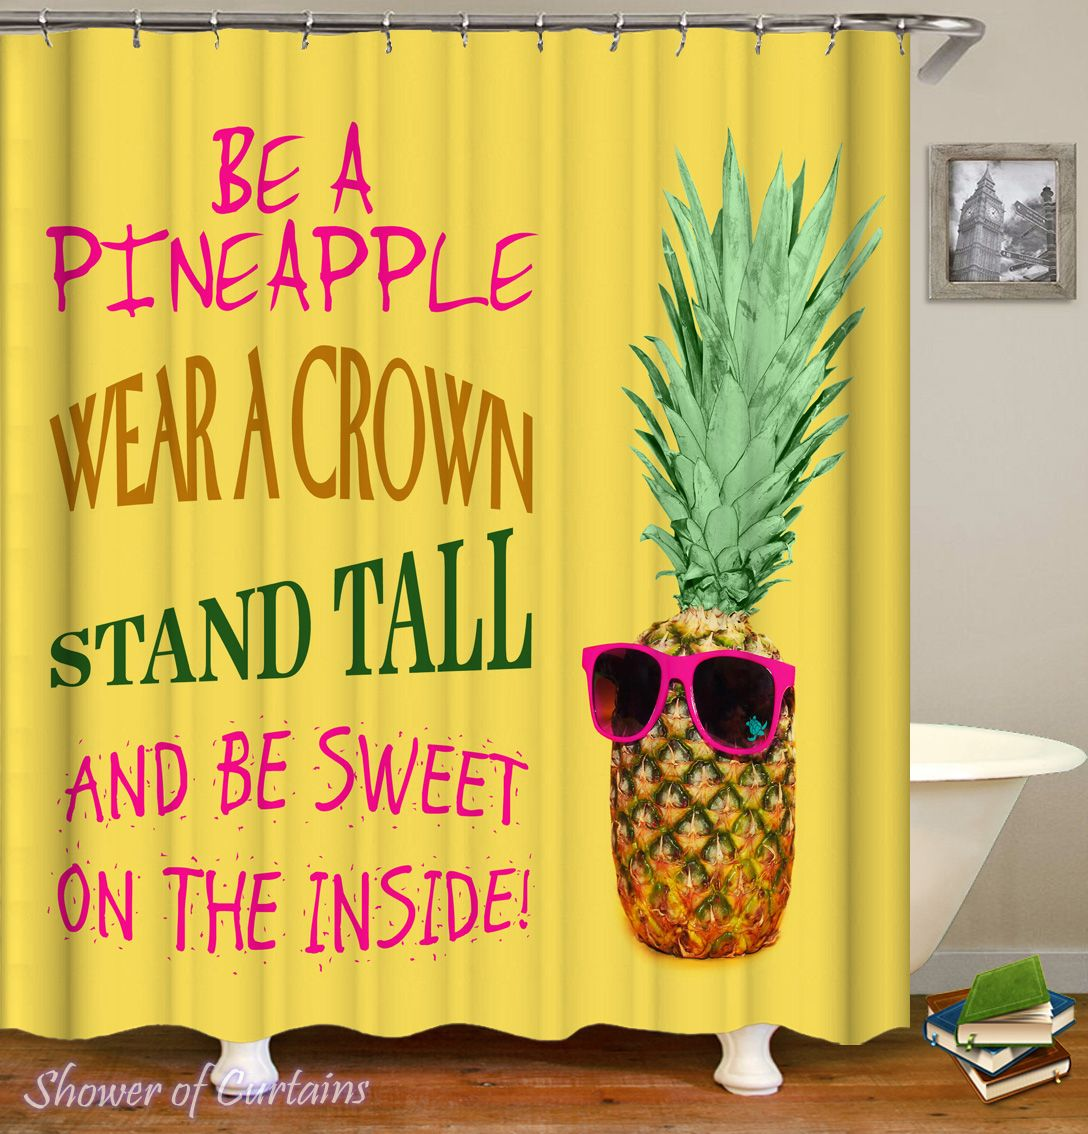 Be A Pineapple Shower Curtain - HXTC0429